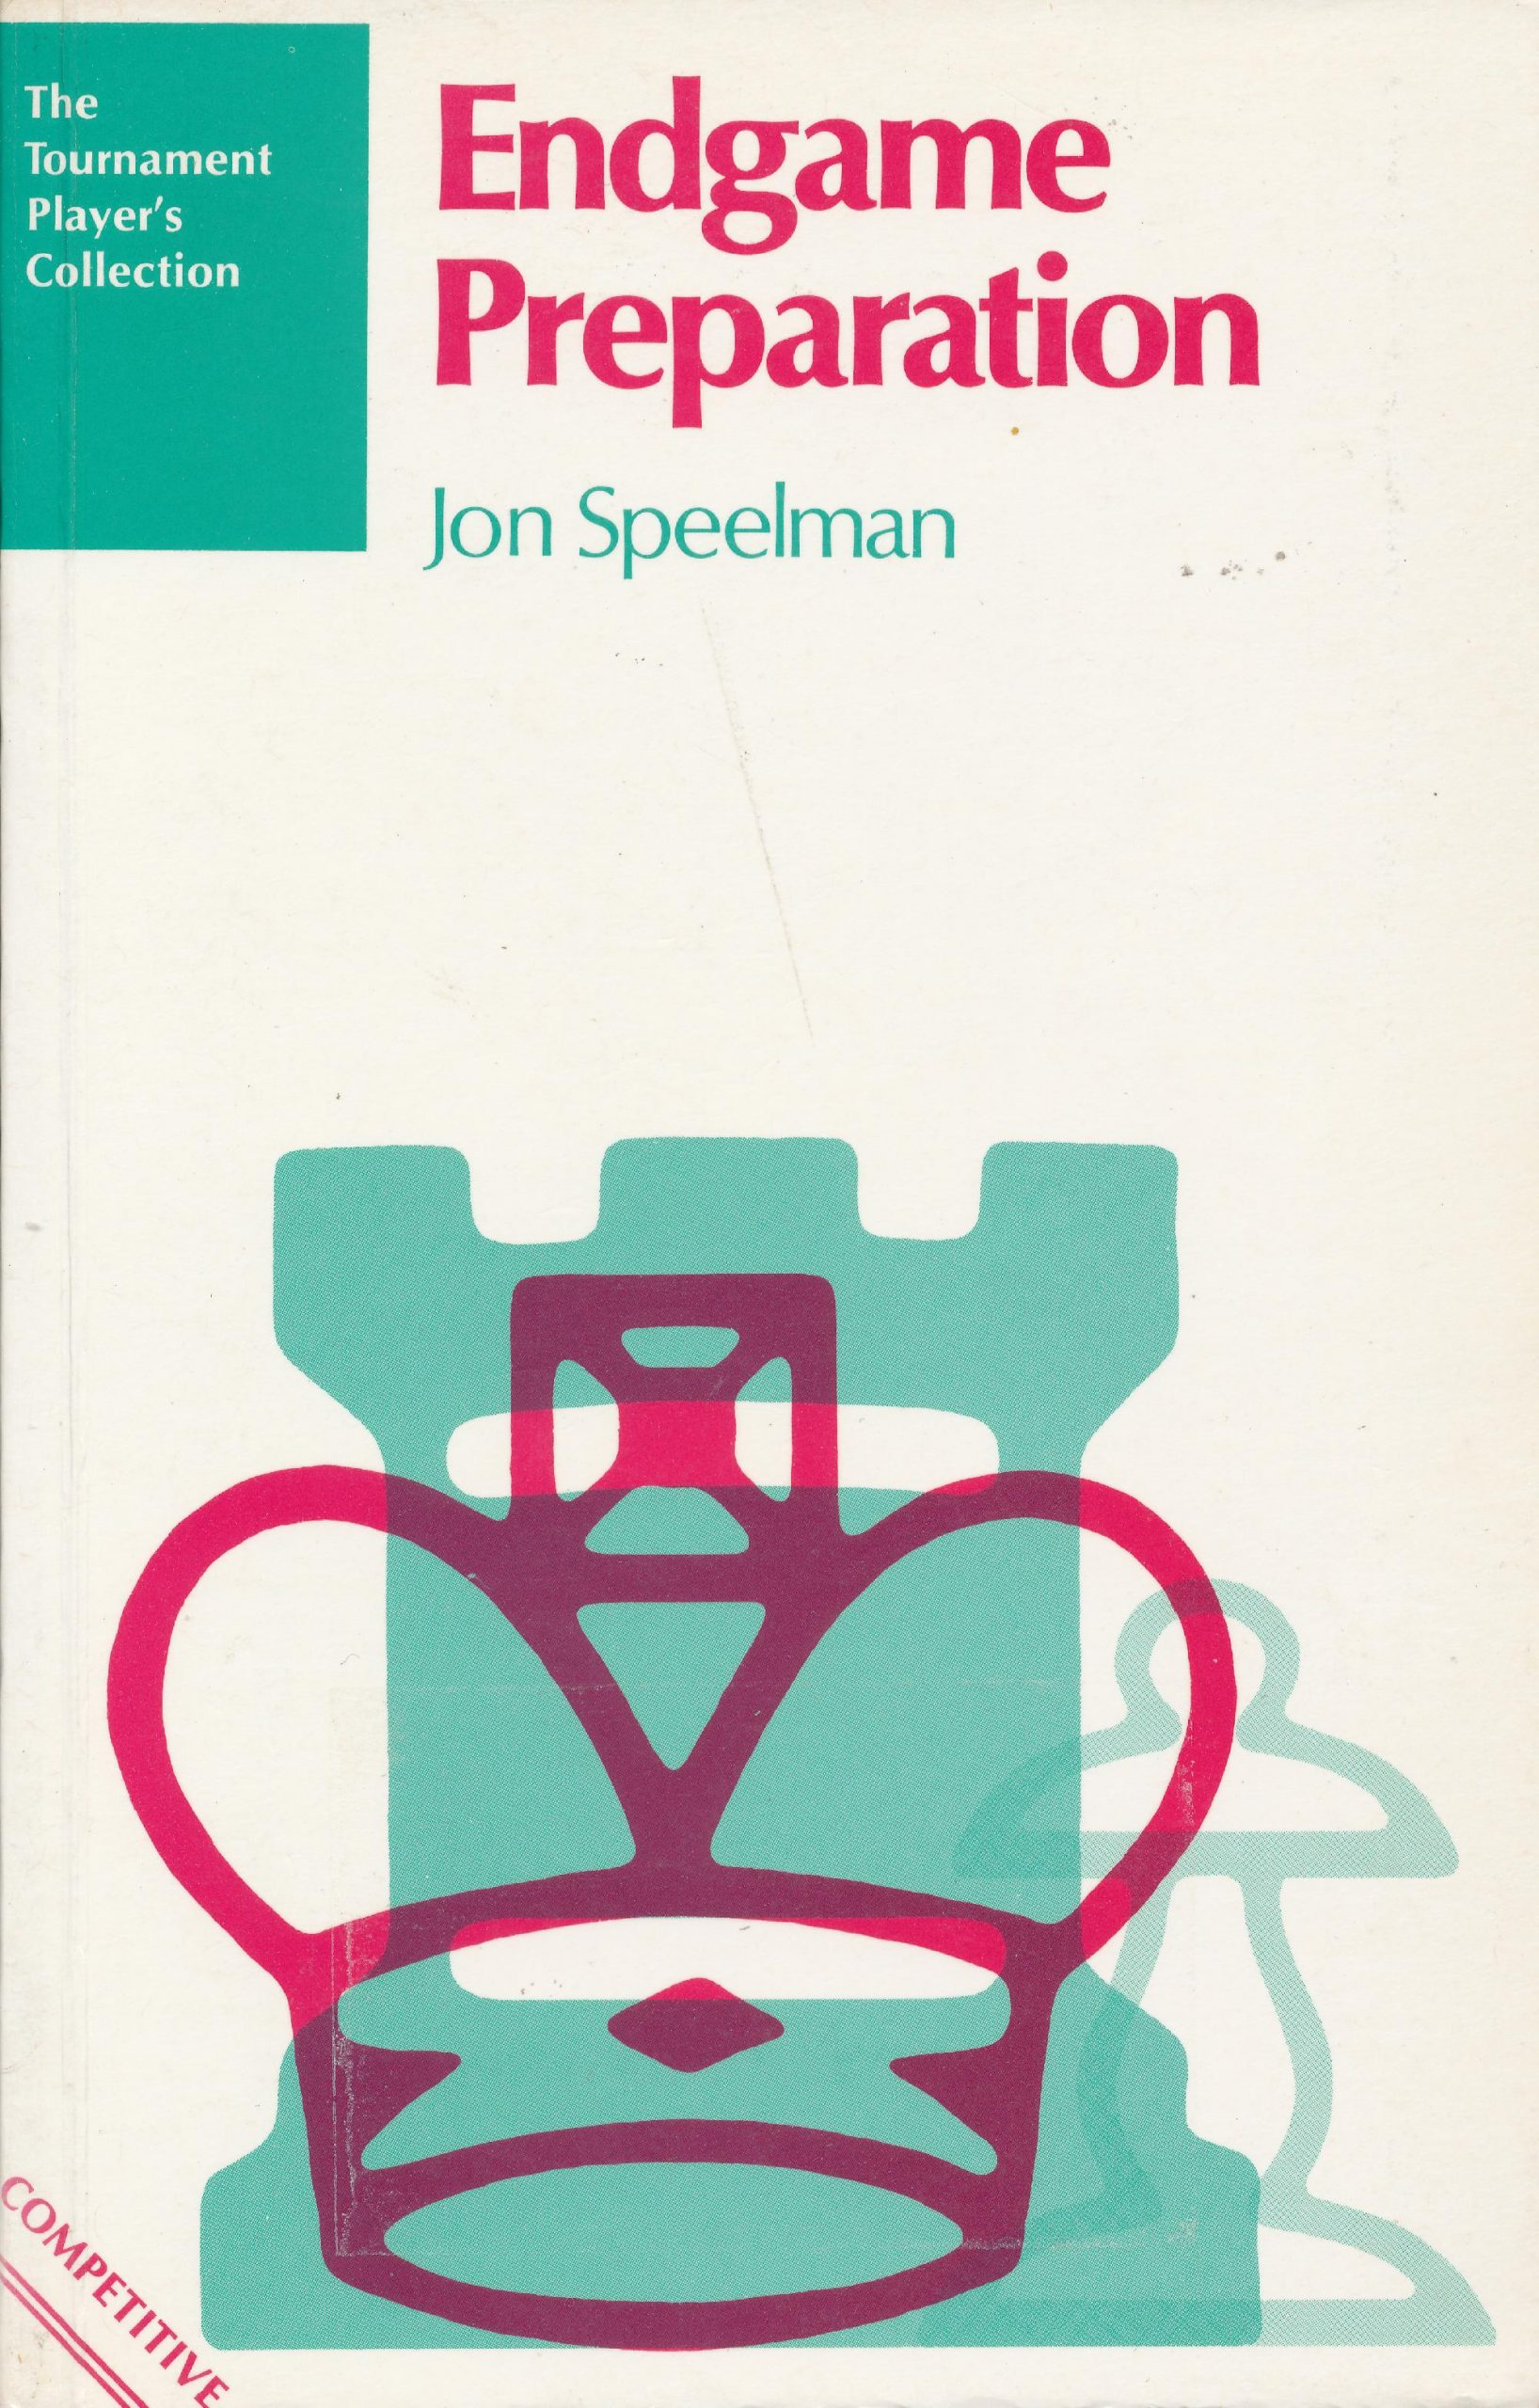 Speelman, Jonathan (1981). Endgame Preparation. B.T. Batsford (London, England). 177 pages. ISBN 978-0-7134-4000-3.